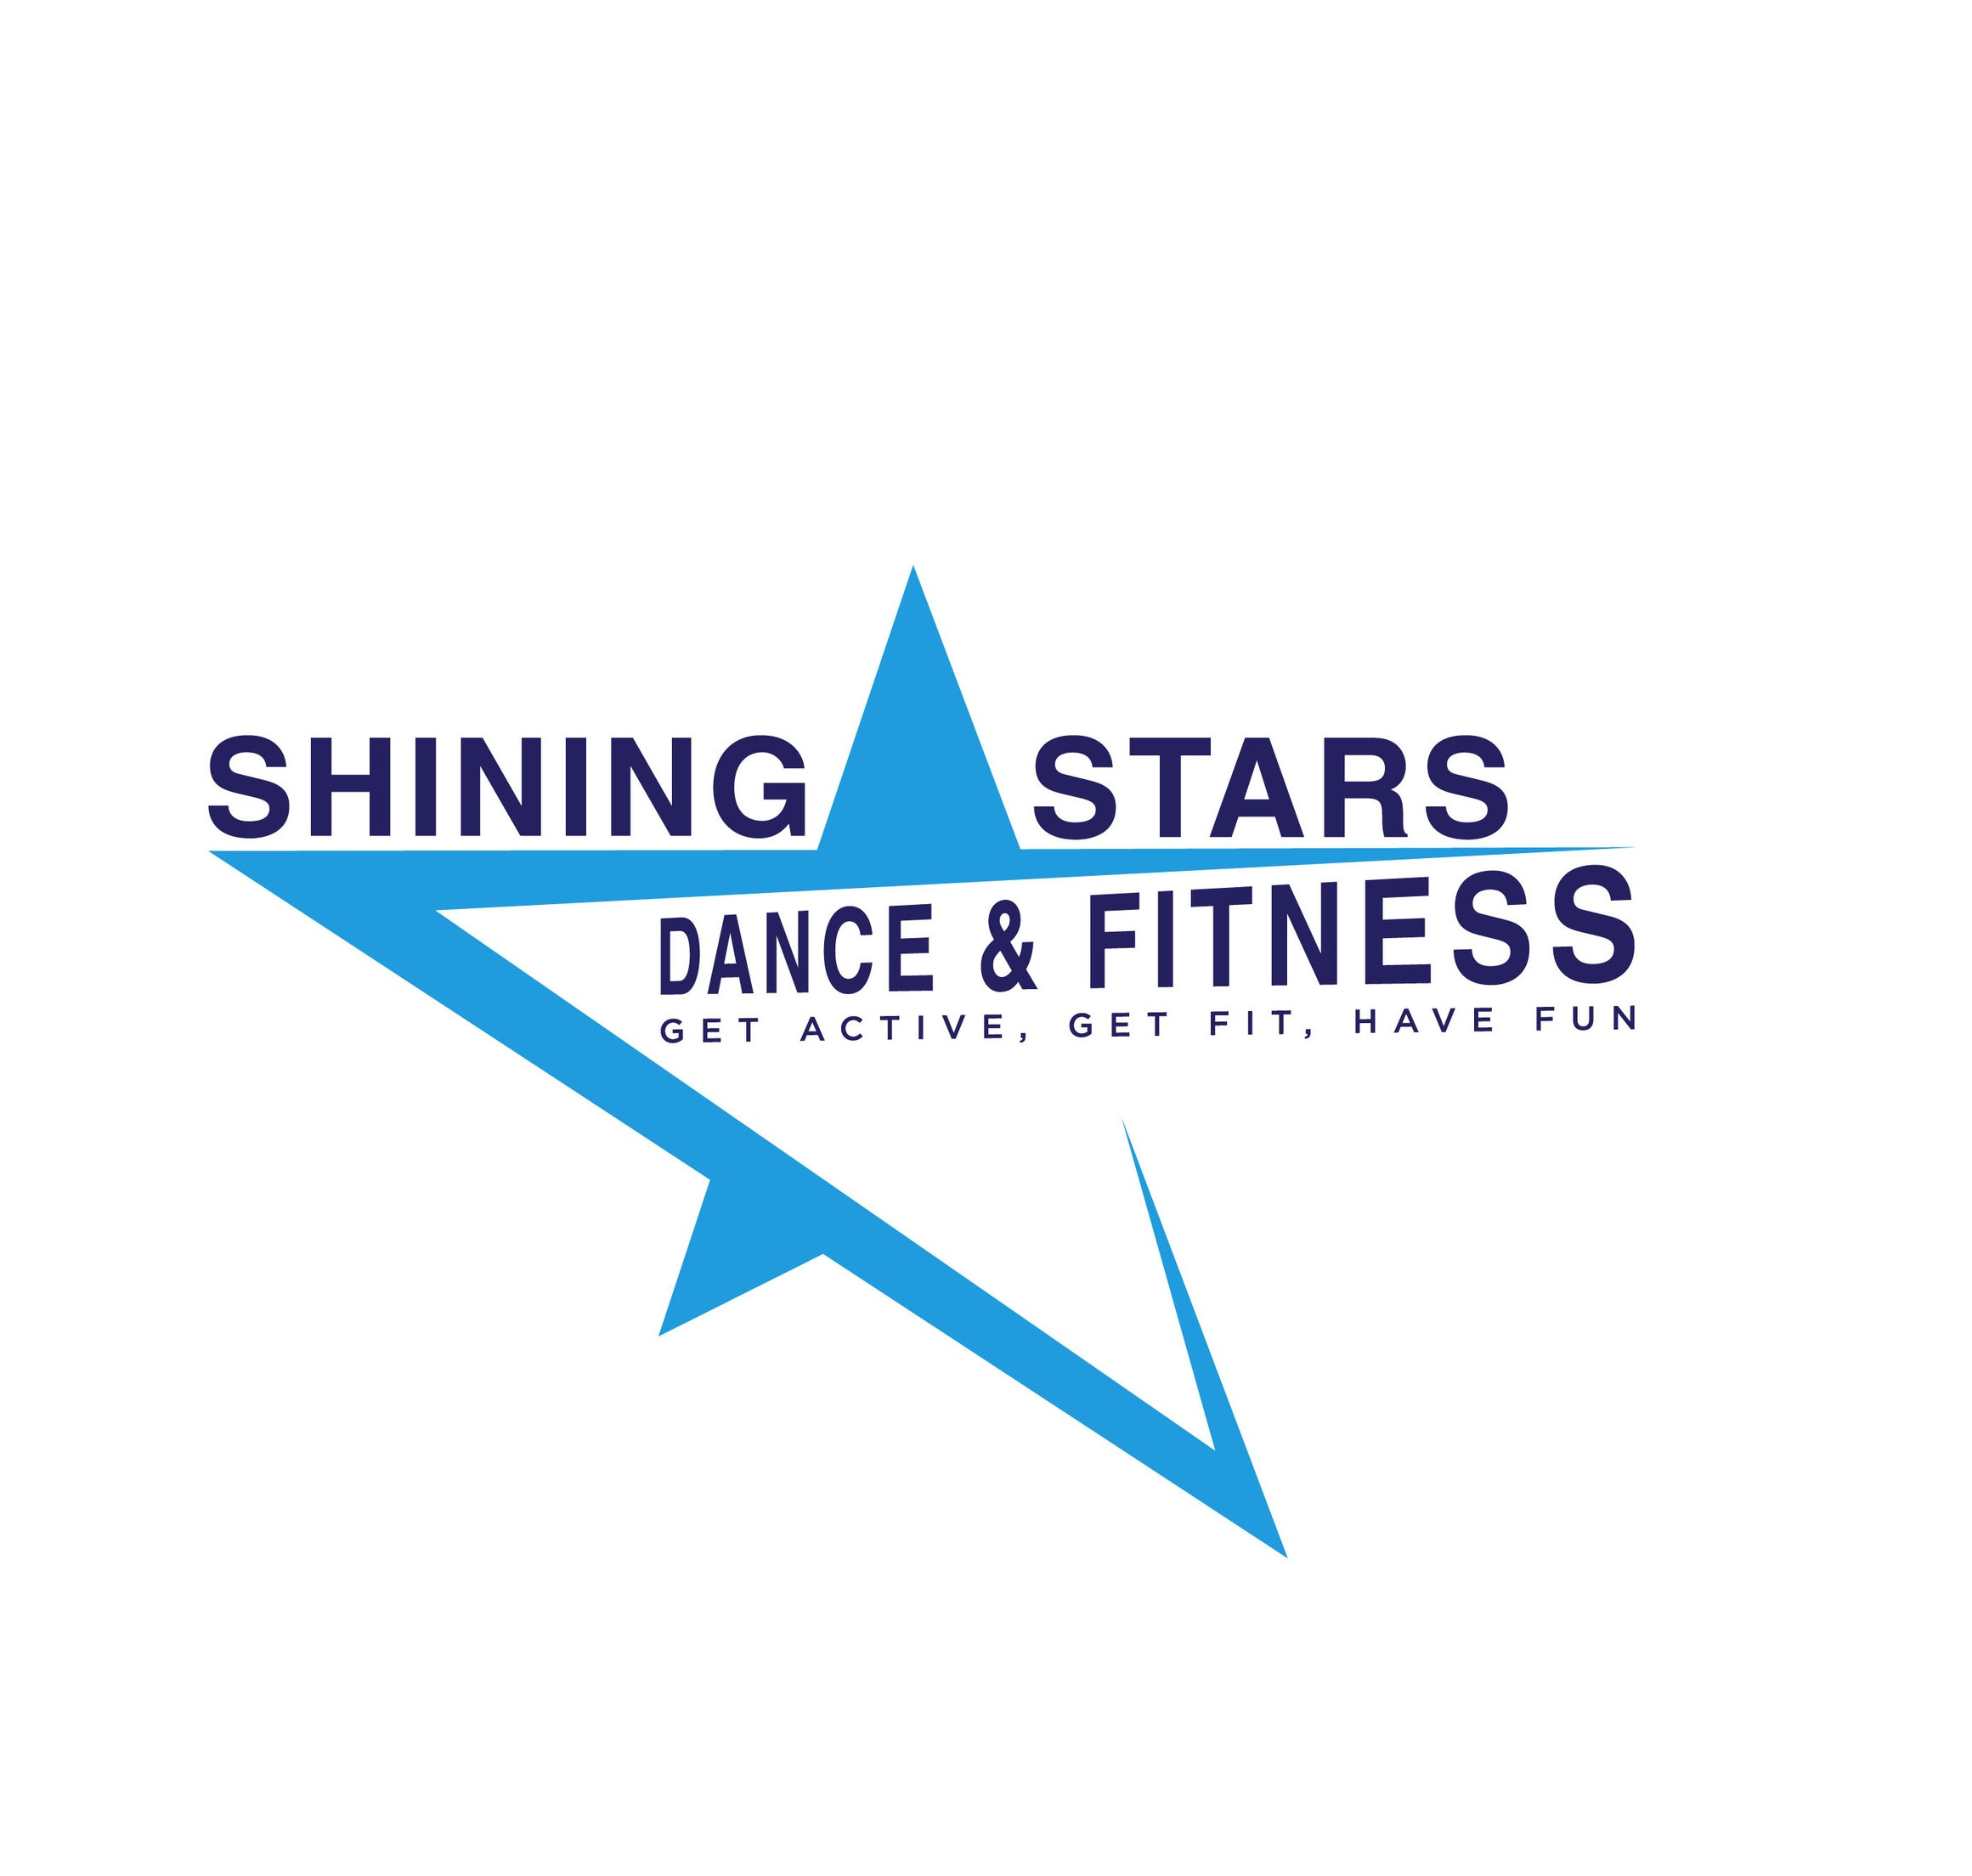 994_Shining+Stars+Dance+%26+Fitness_A_02.jpg